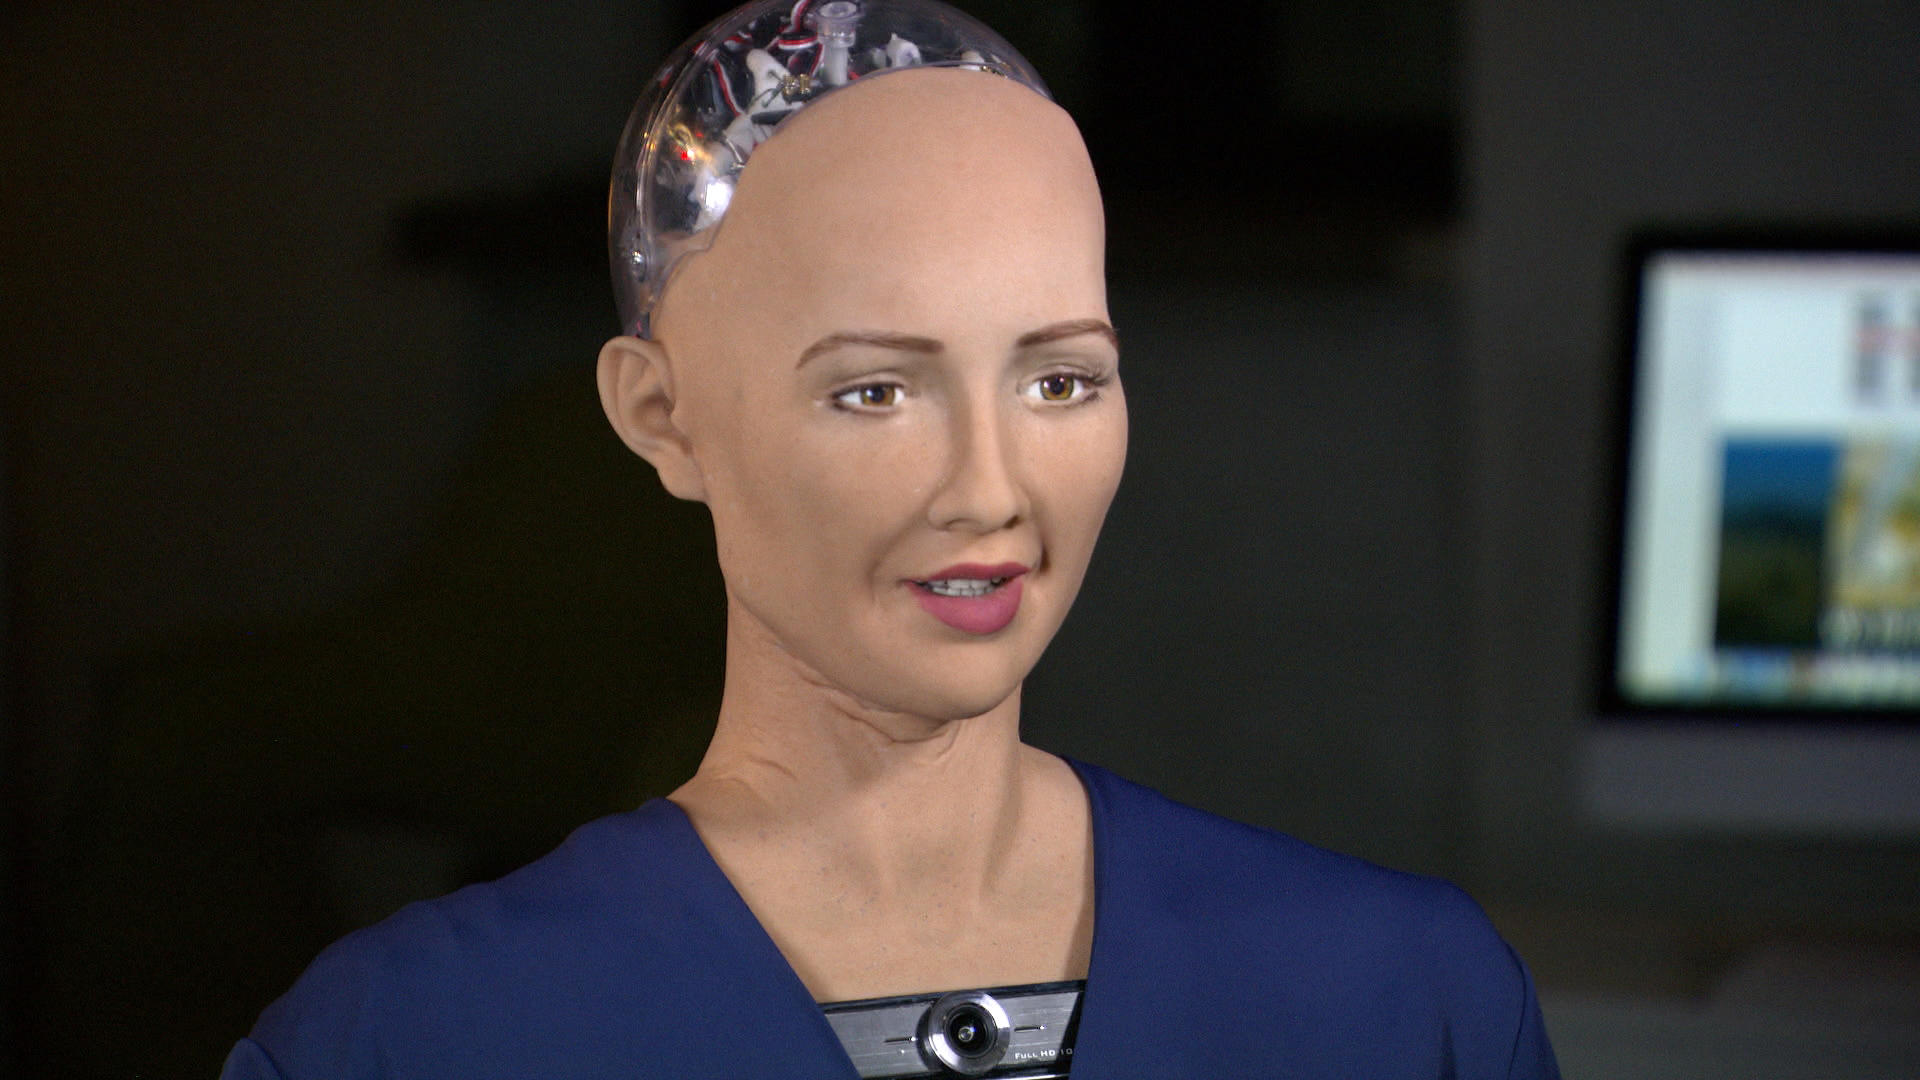 When robots think for themselves - CBS News